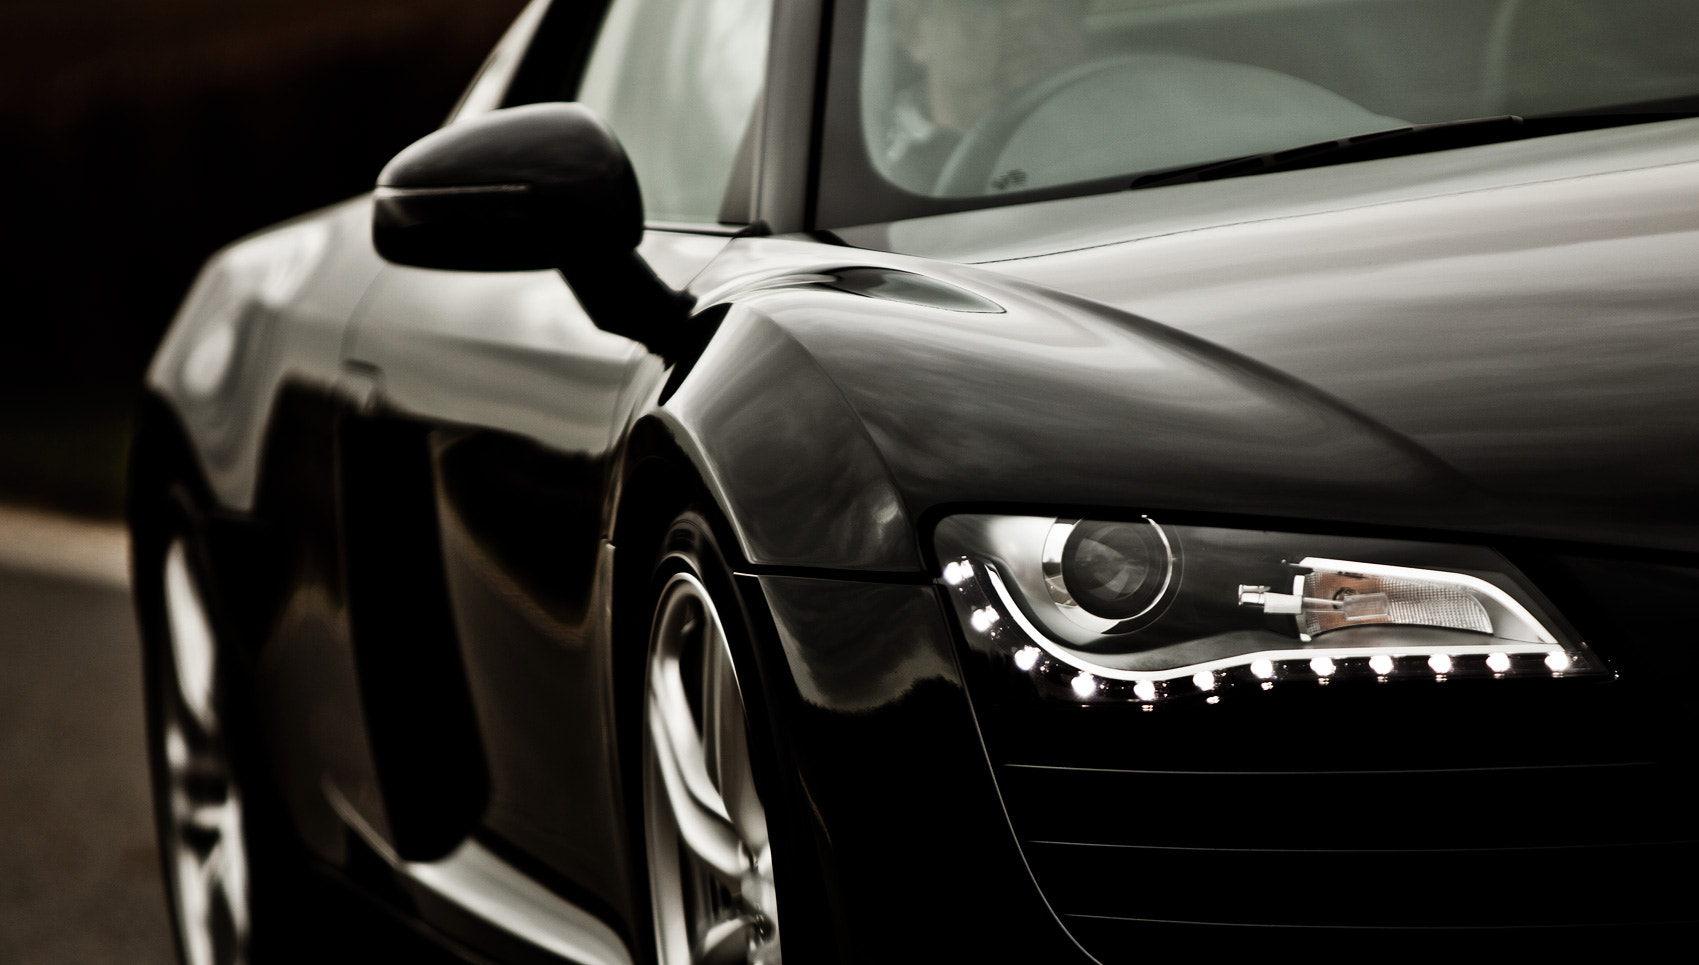 Photograph Audi R8 by Adam Swords on 500px